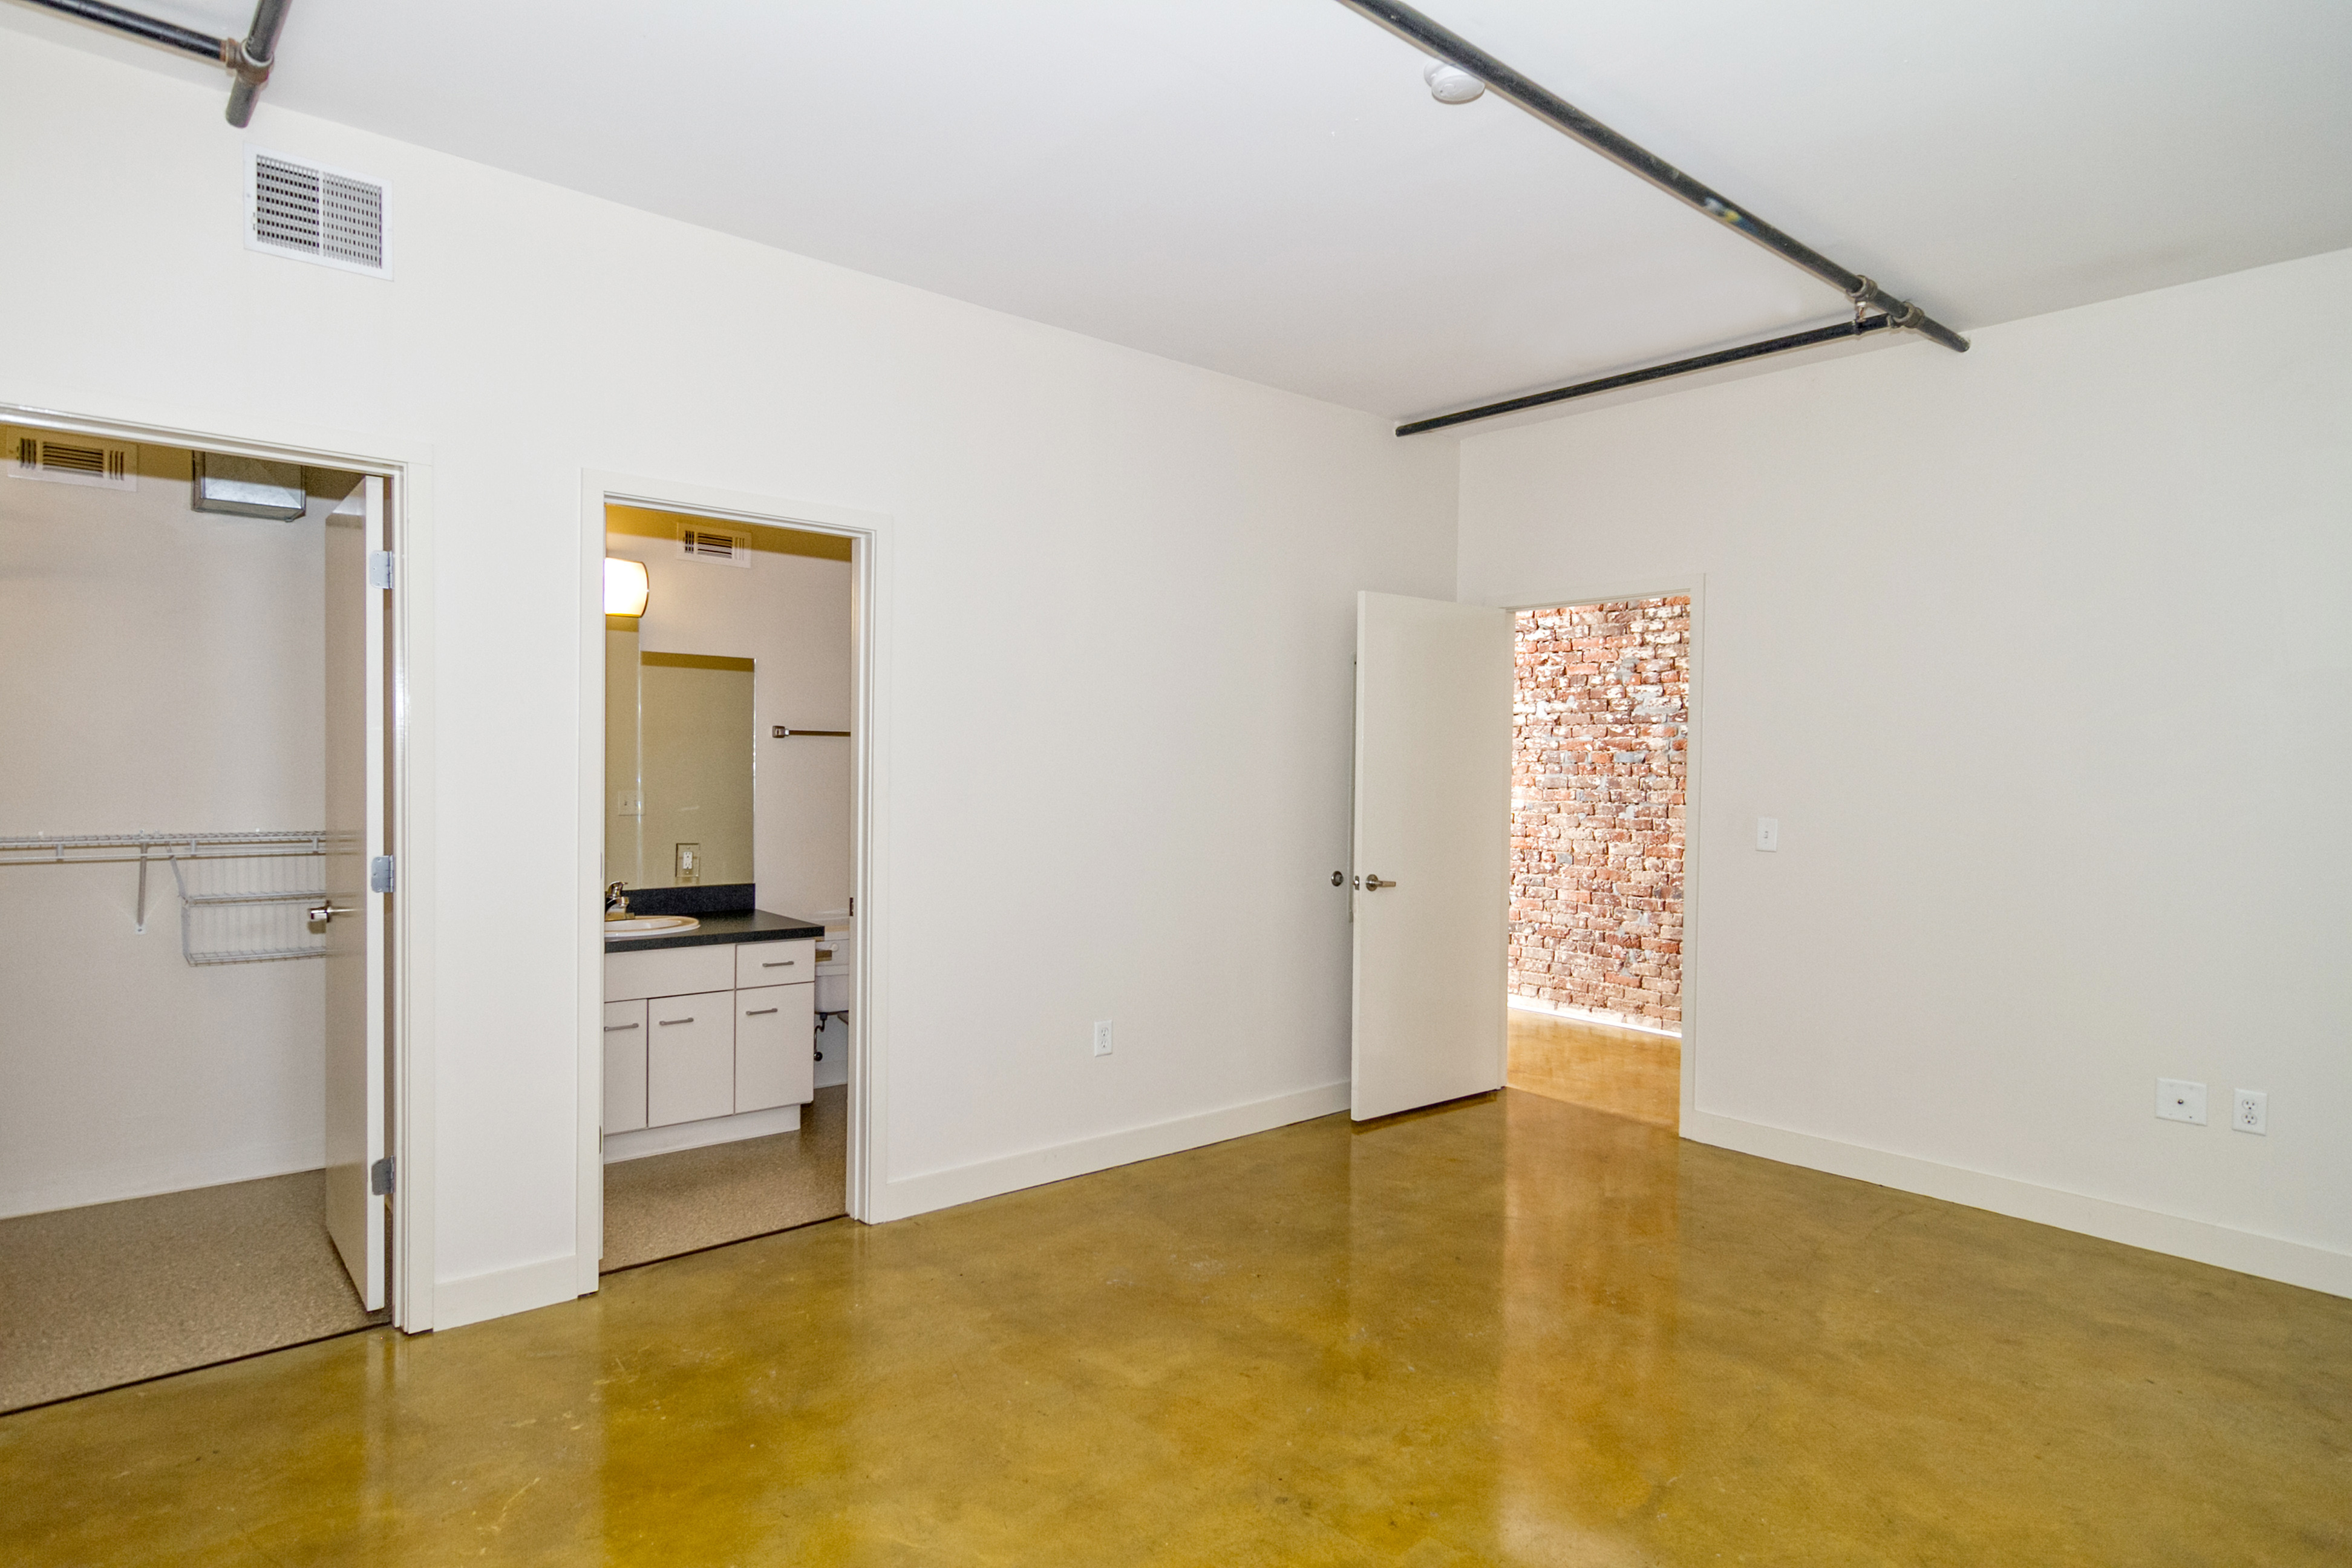 Image of Stained Concrete Floors* for Lofts at 160